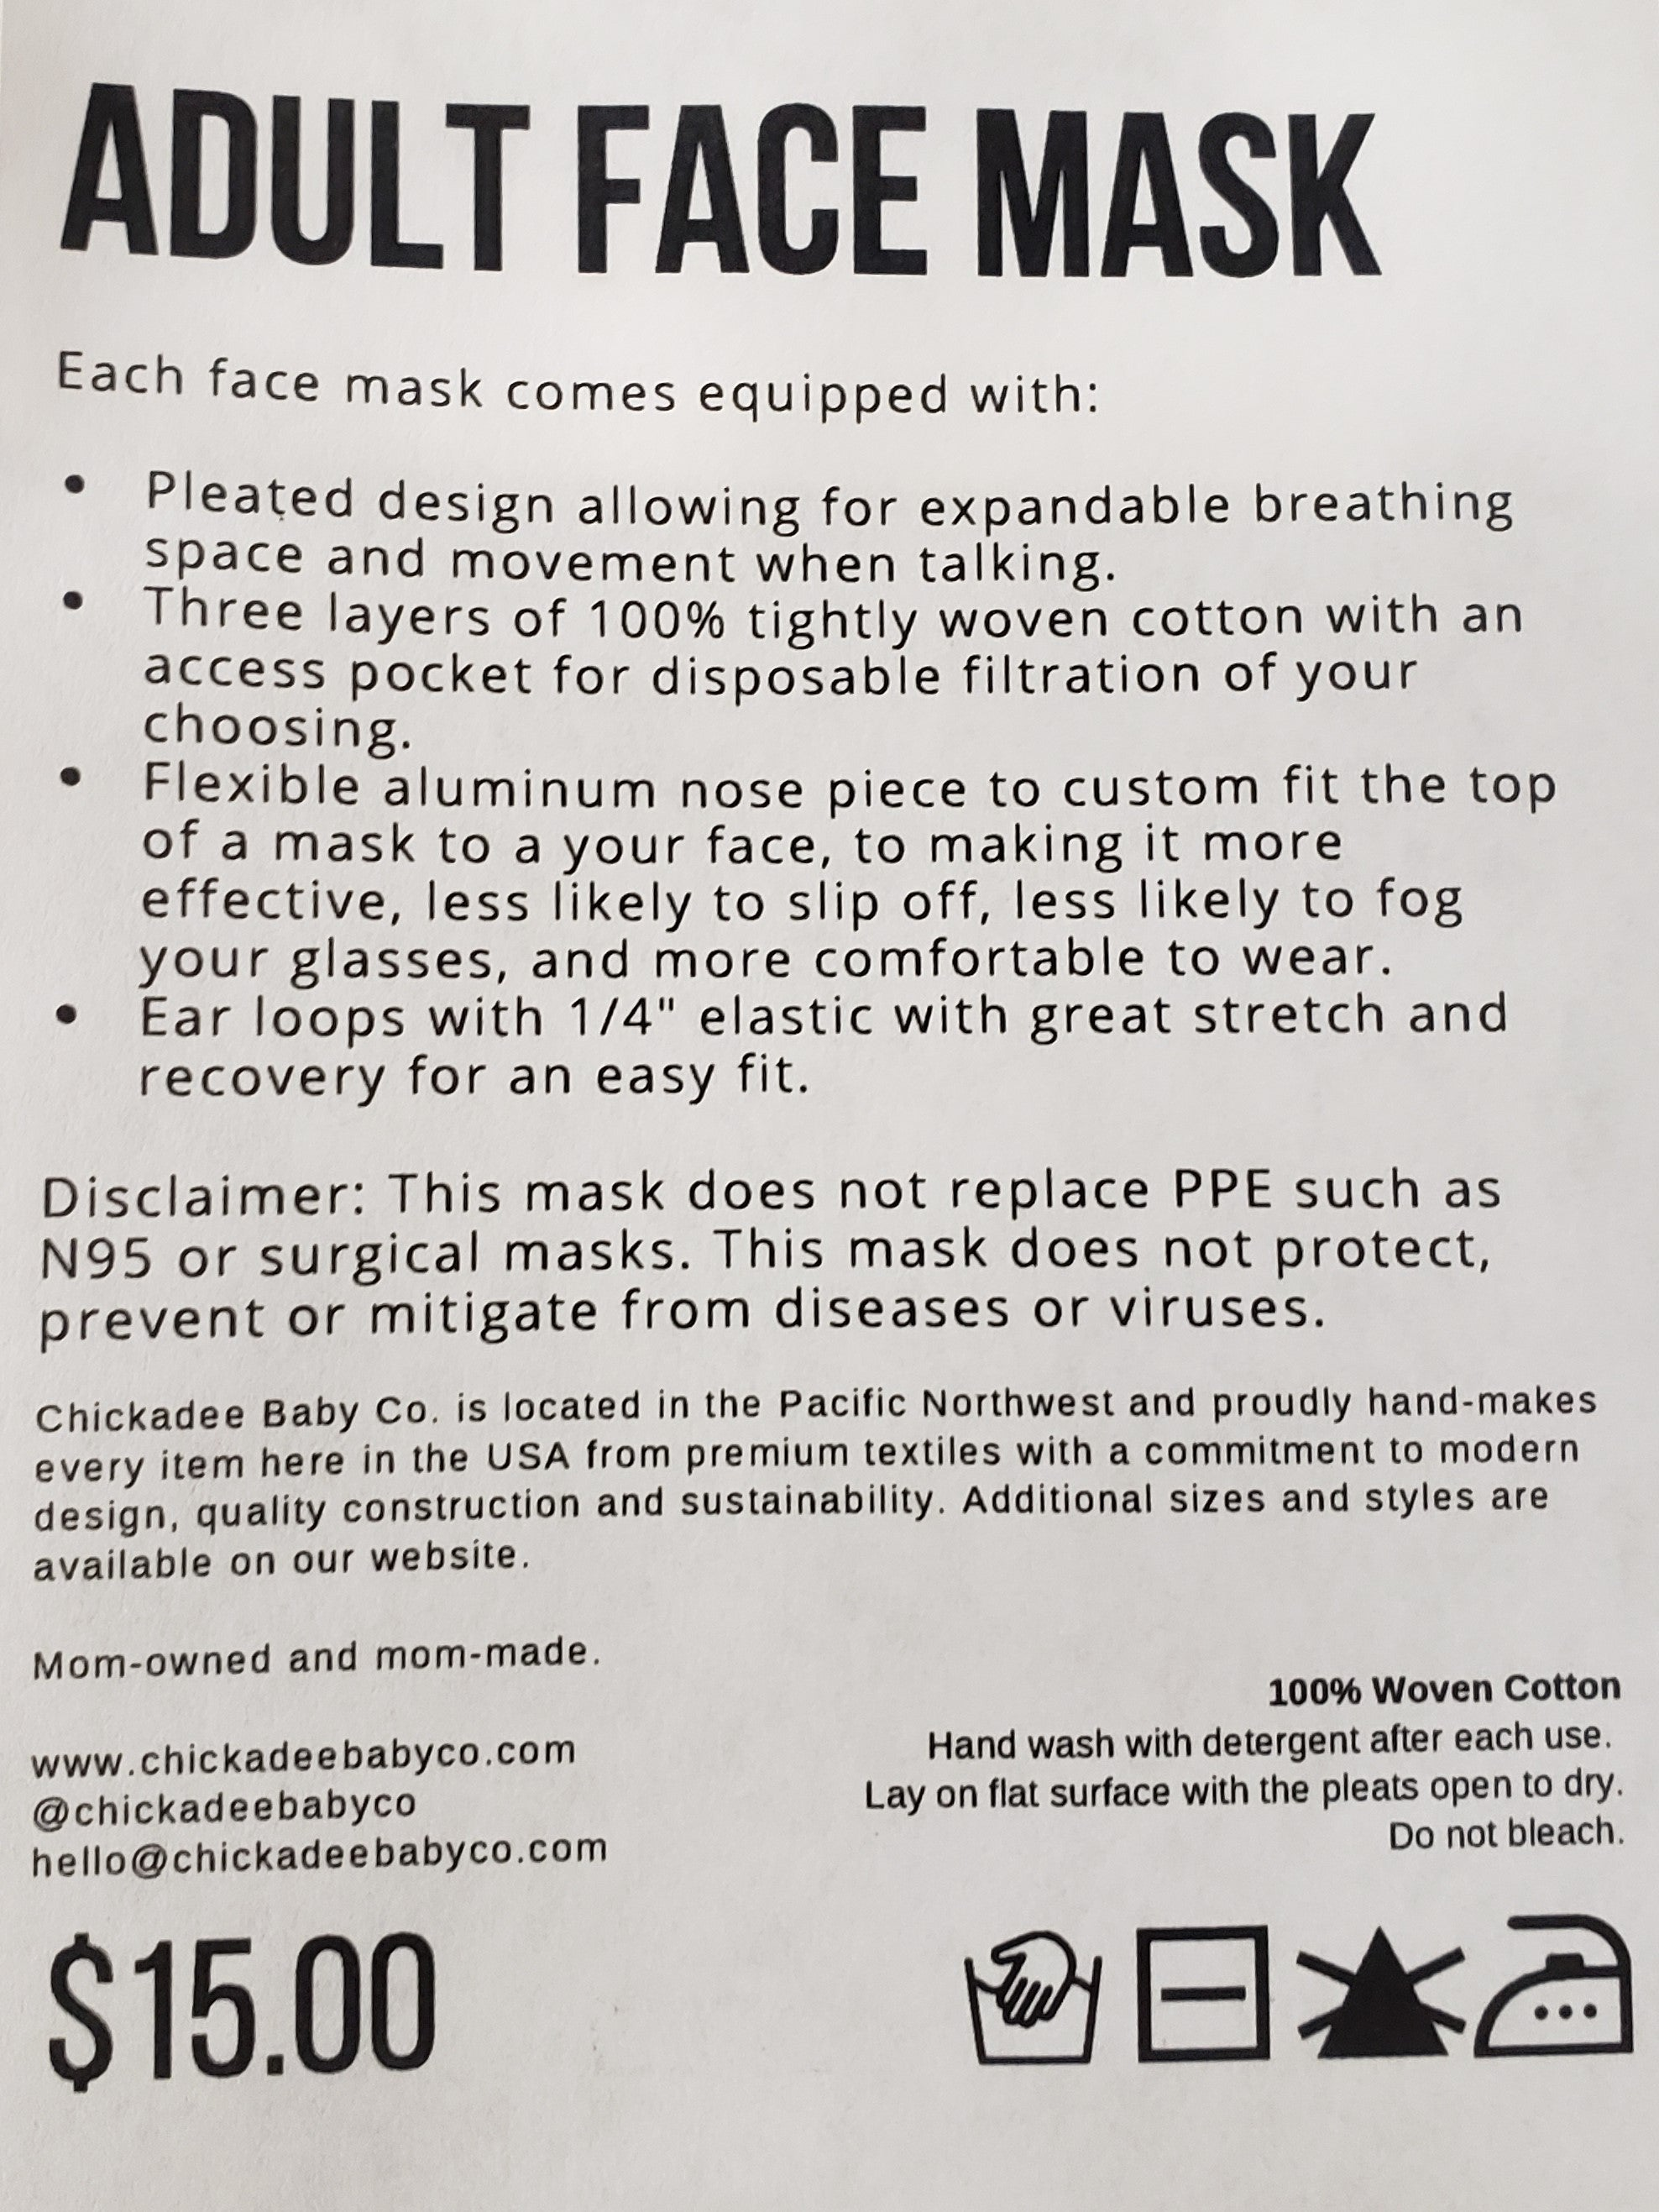 Adult Face Mask - Line Markings